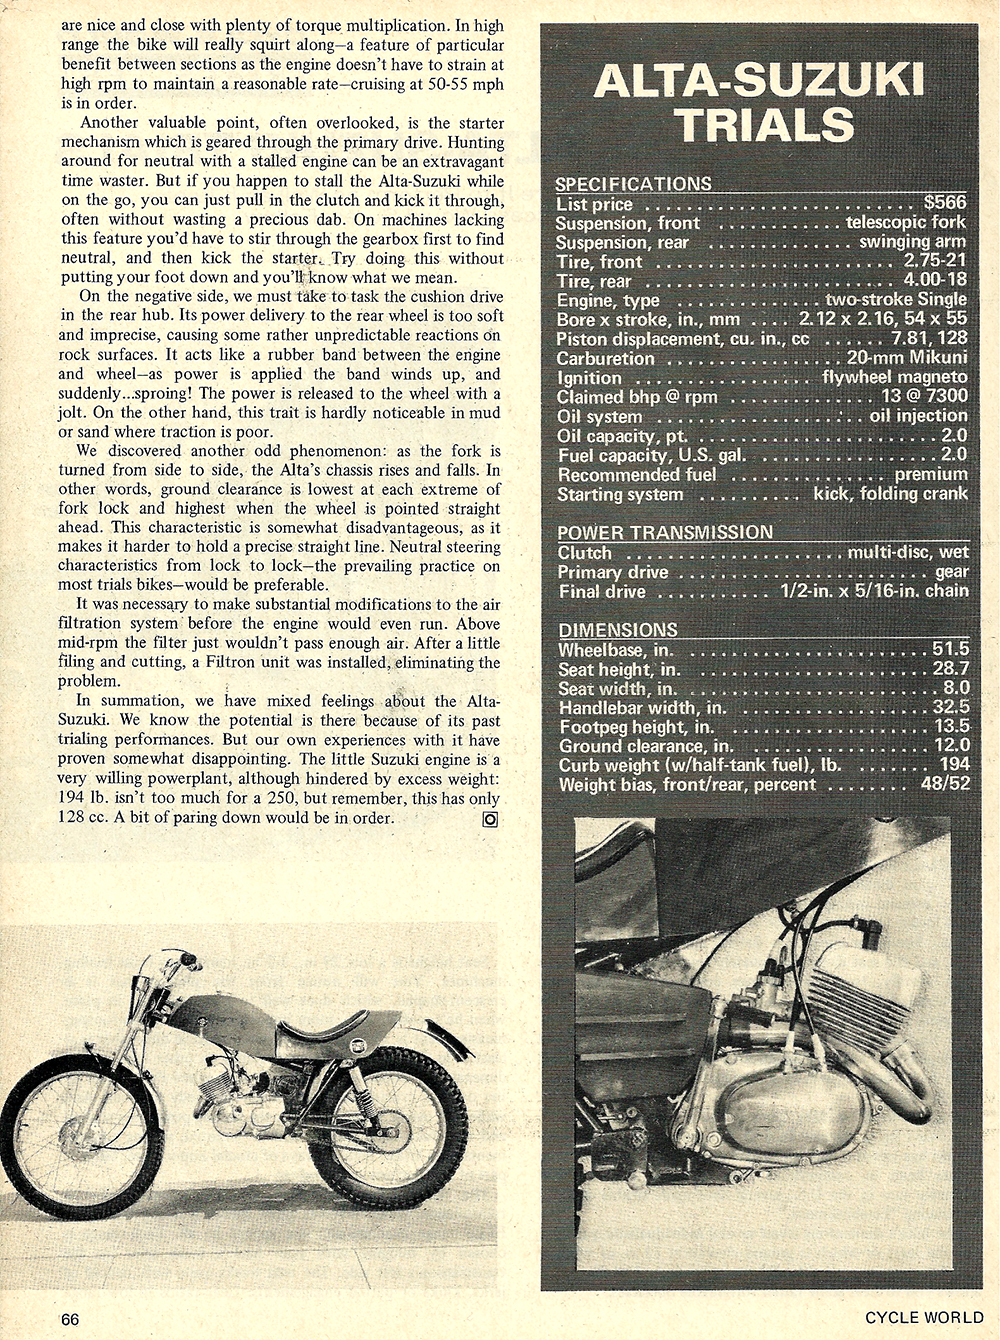 1970 Alta-Suzuki Trials test 2.jpg